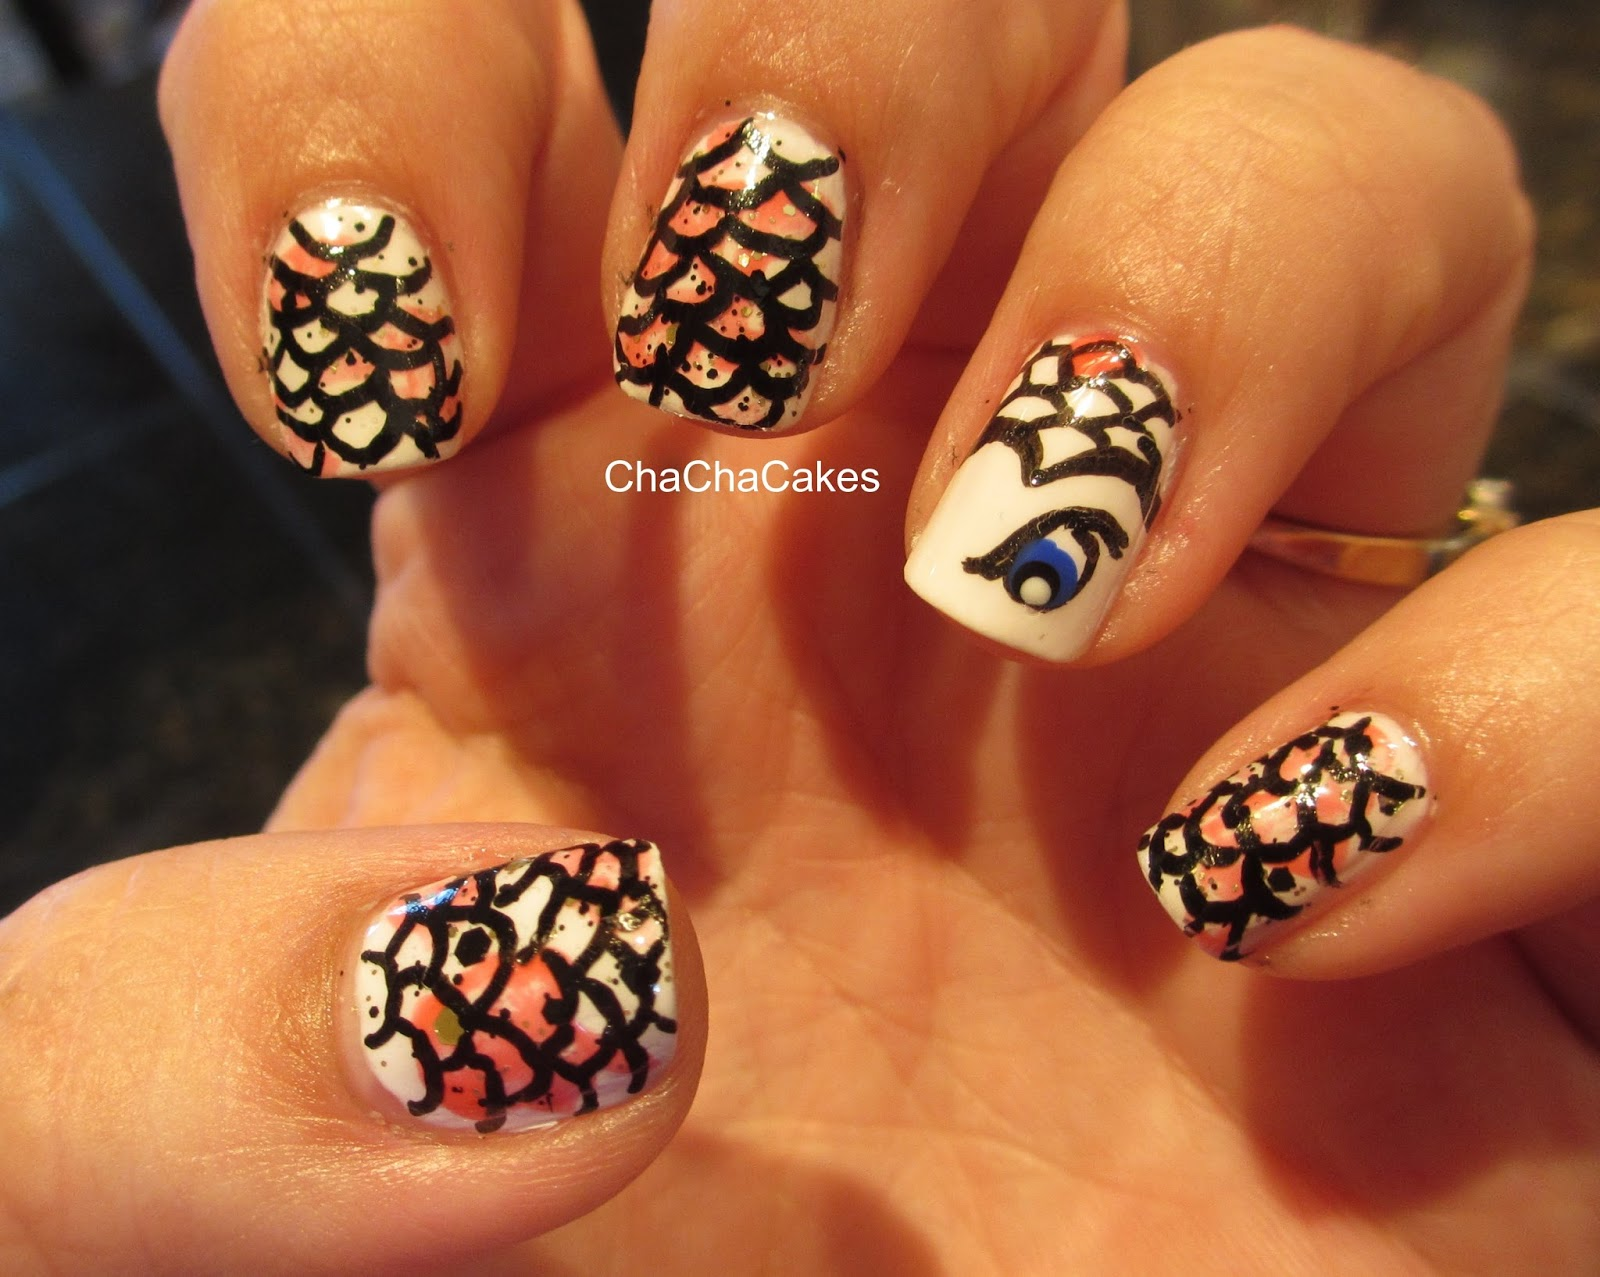 Cha Cha Cakes Nails: Day 13 in the 31 Day Nail Art Challenge